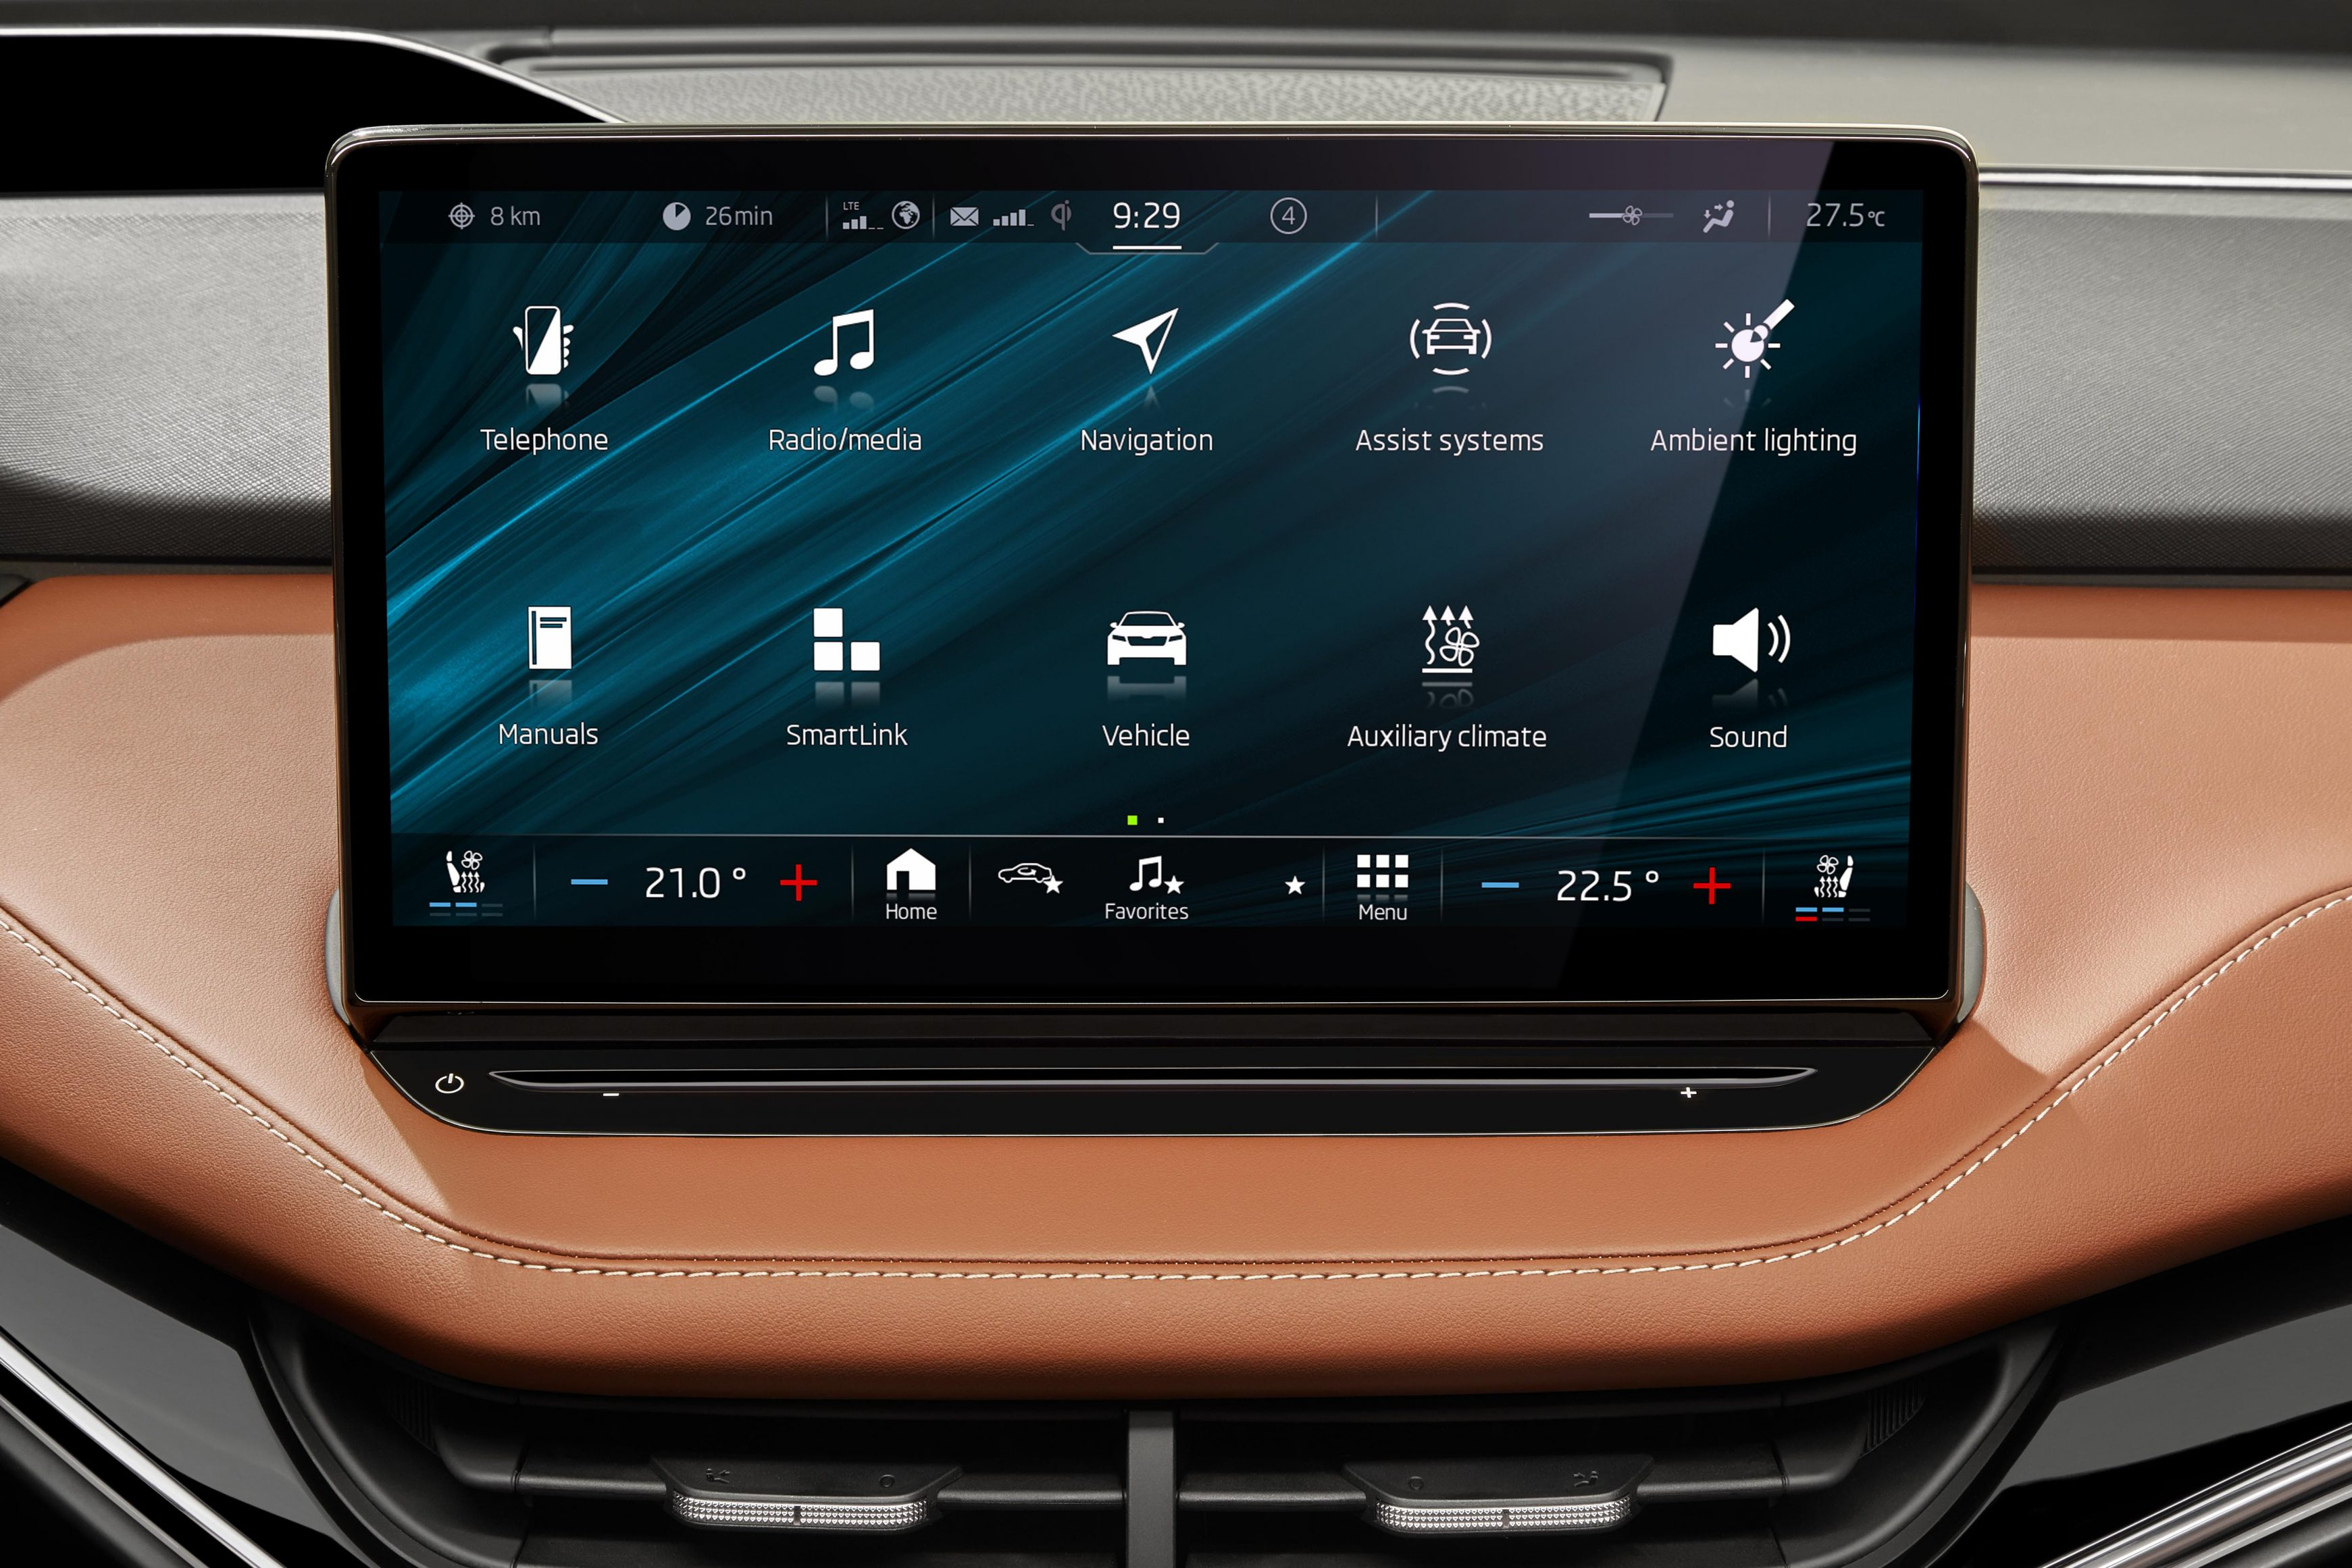 Infotainment in the Skoda Enyaq iV lets you control most of the car's functions